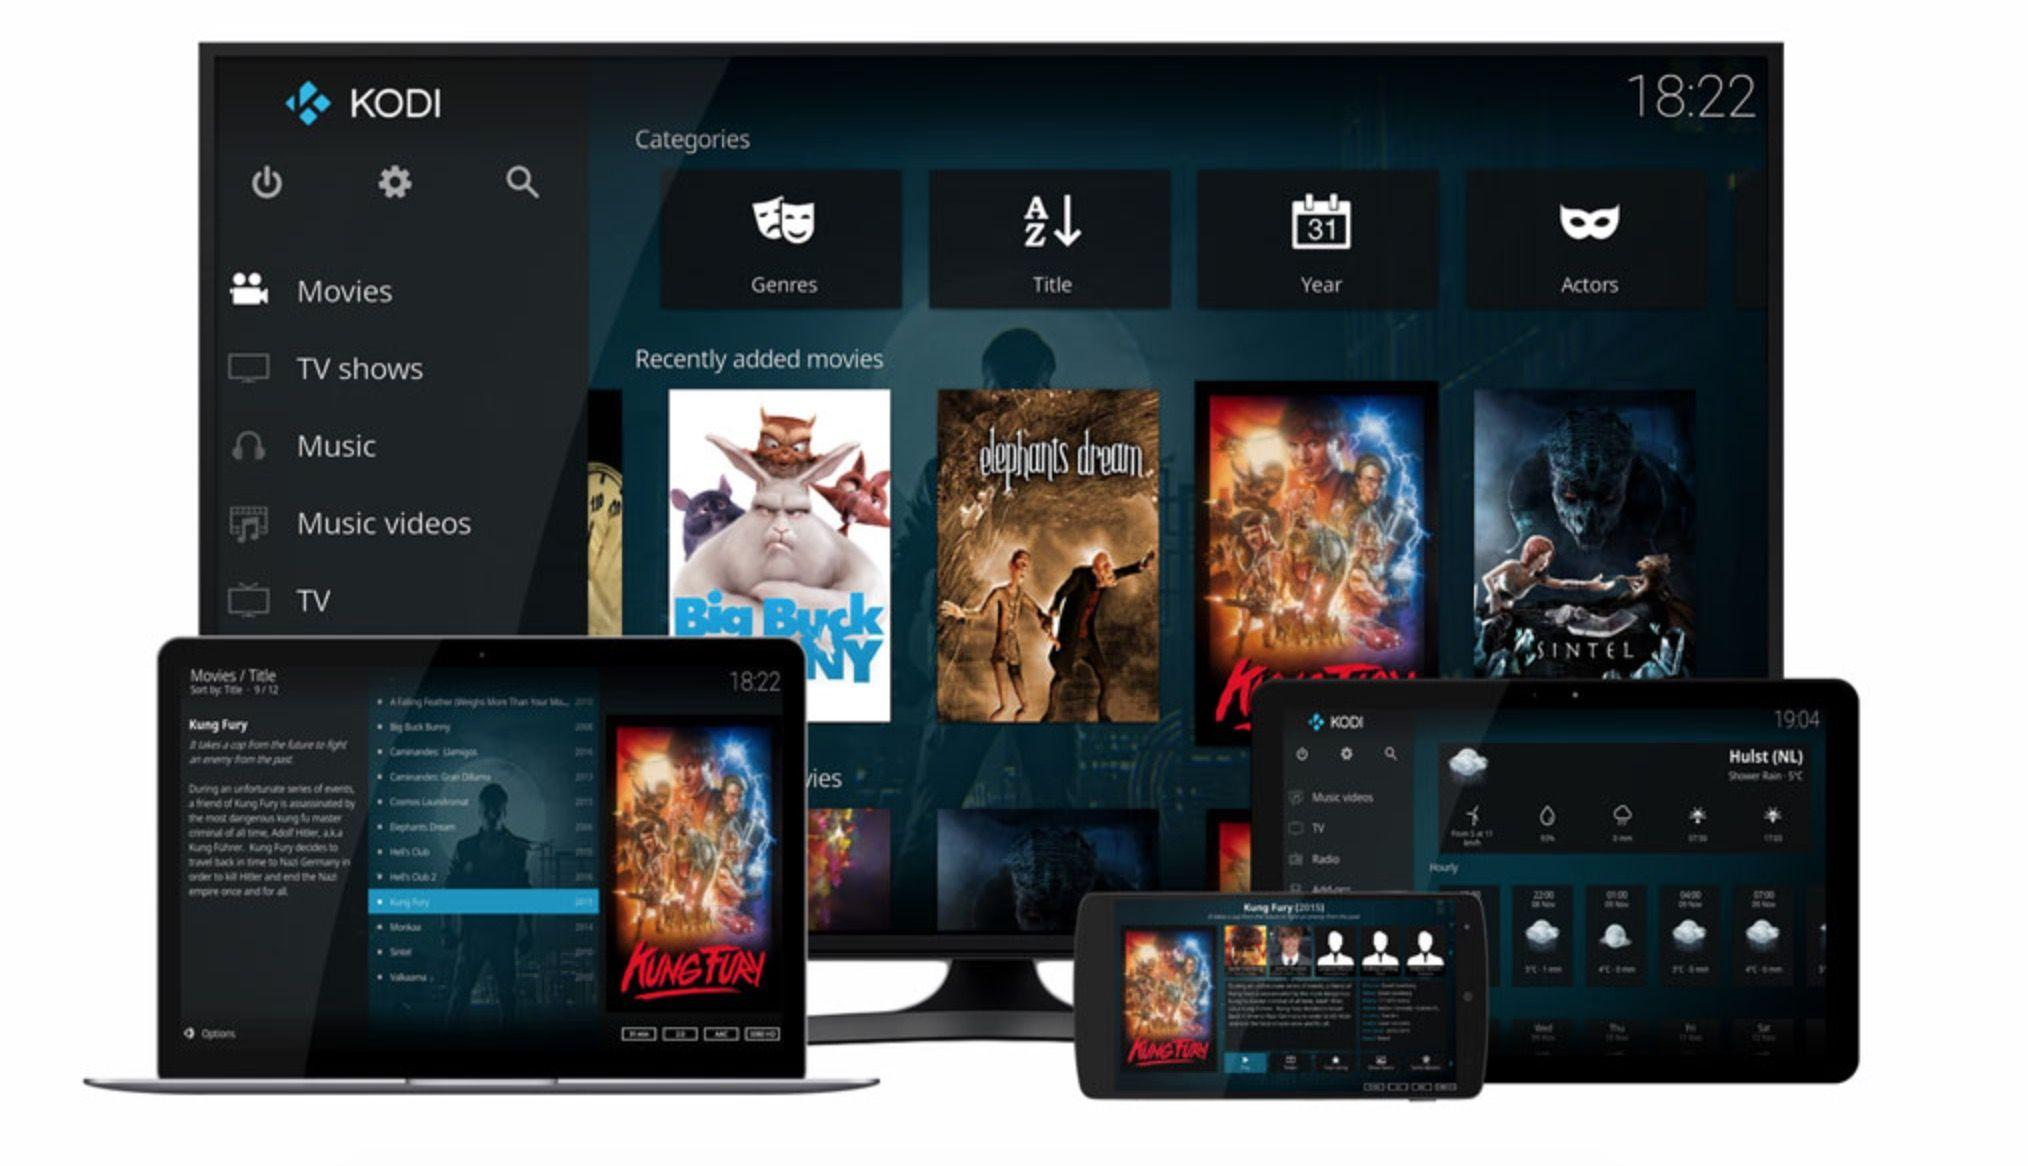 I migliori TV Box Android per lo streaming disponibili su Amazon